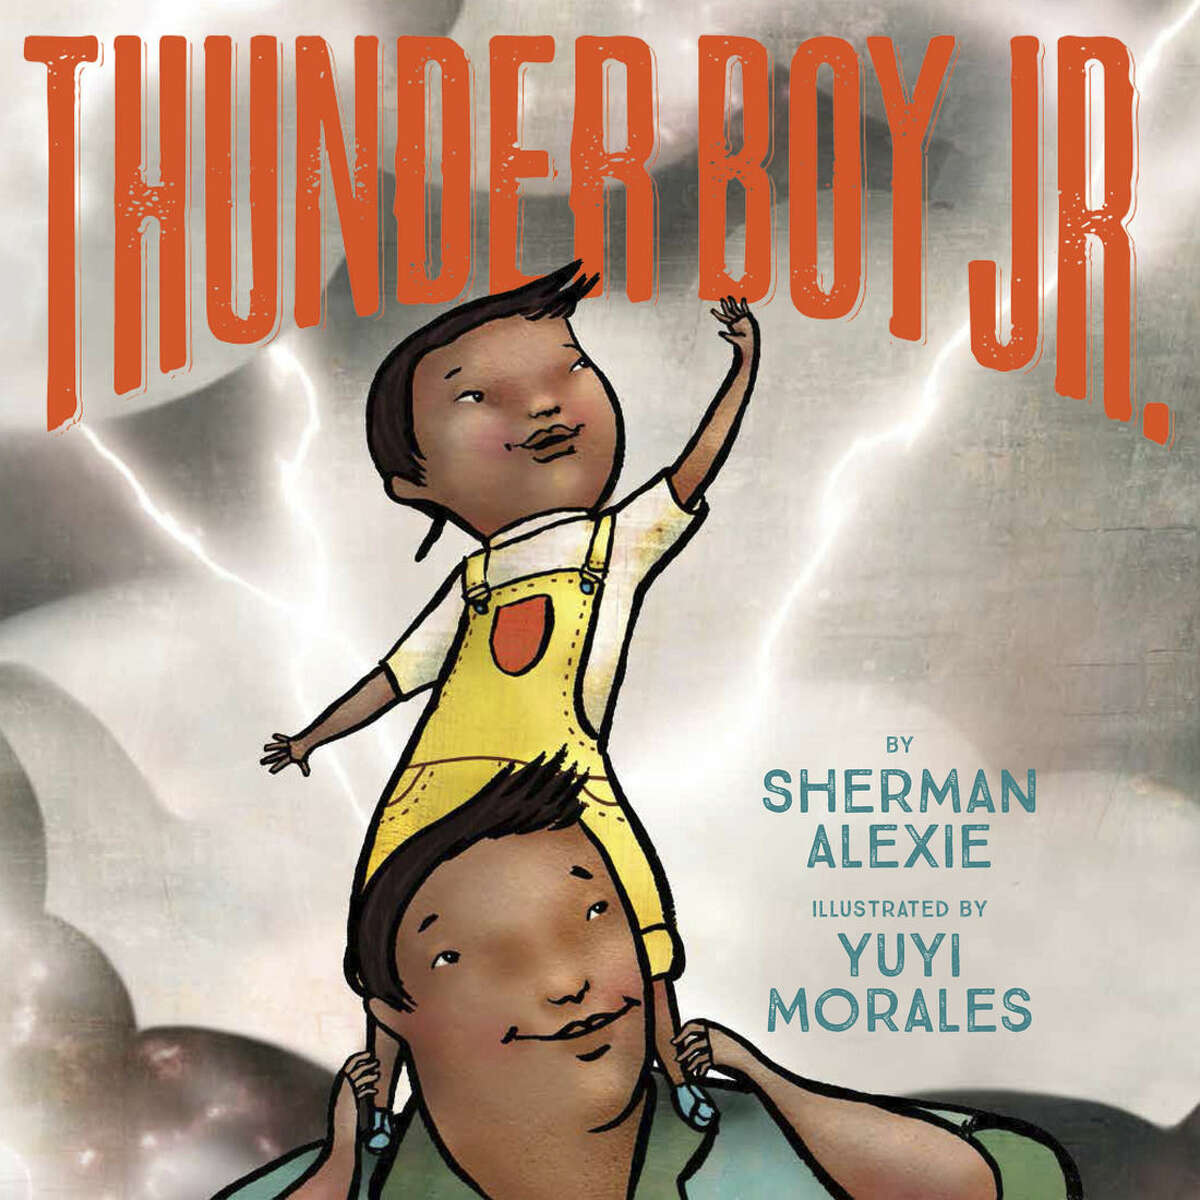 This book cover image released by Little, Brown Books for Young Readers shows children's book